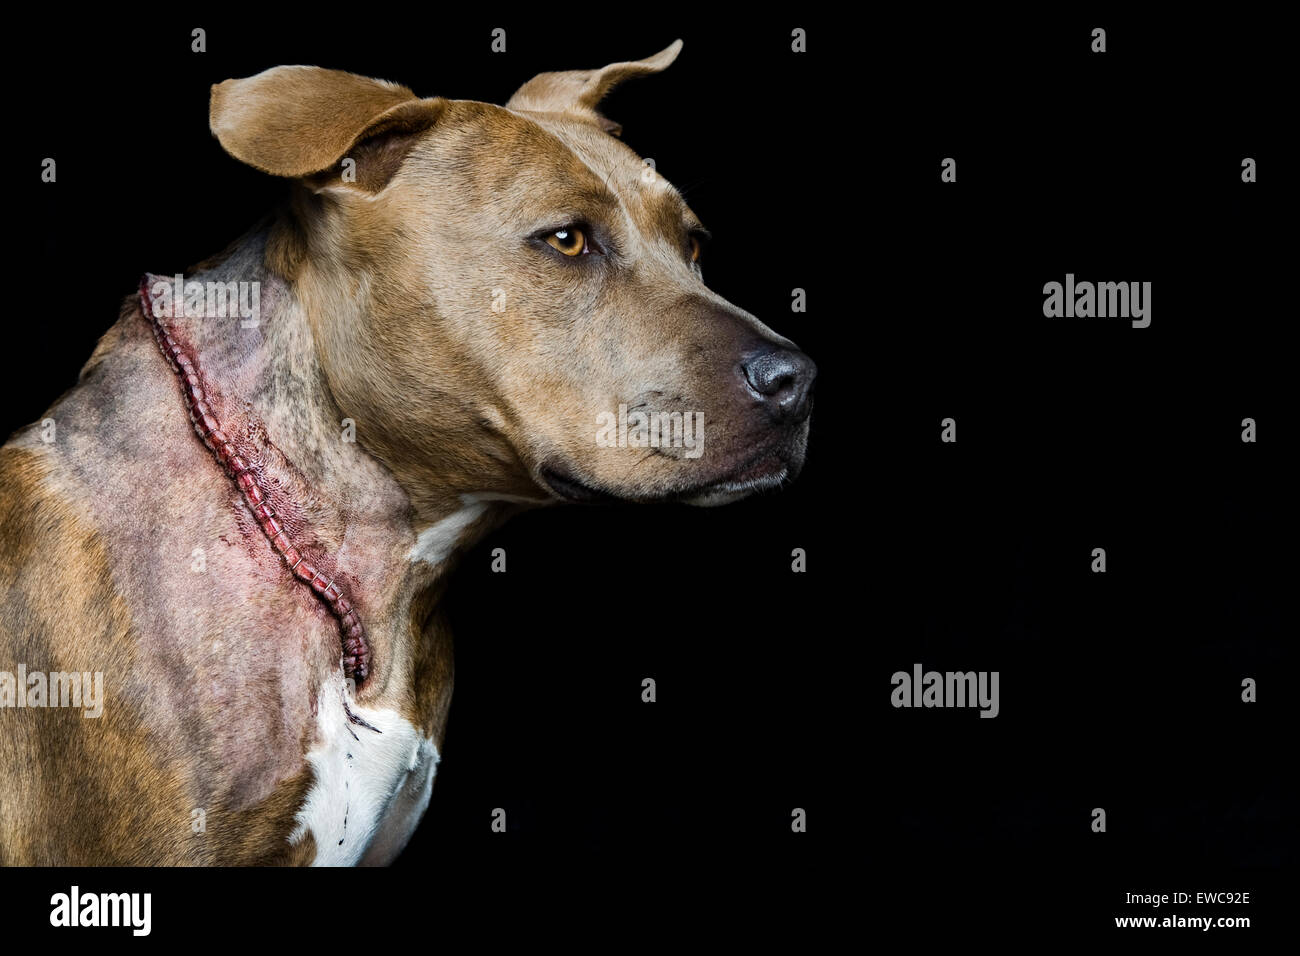 Studio headshot of adult cancer surviving Pitbull dog in profile on black background with horrific large long incision - Stock Image